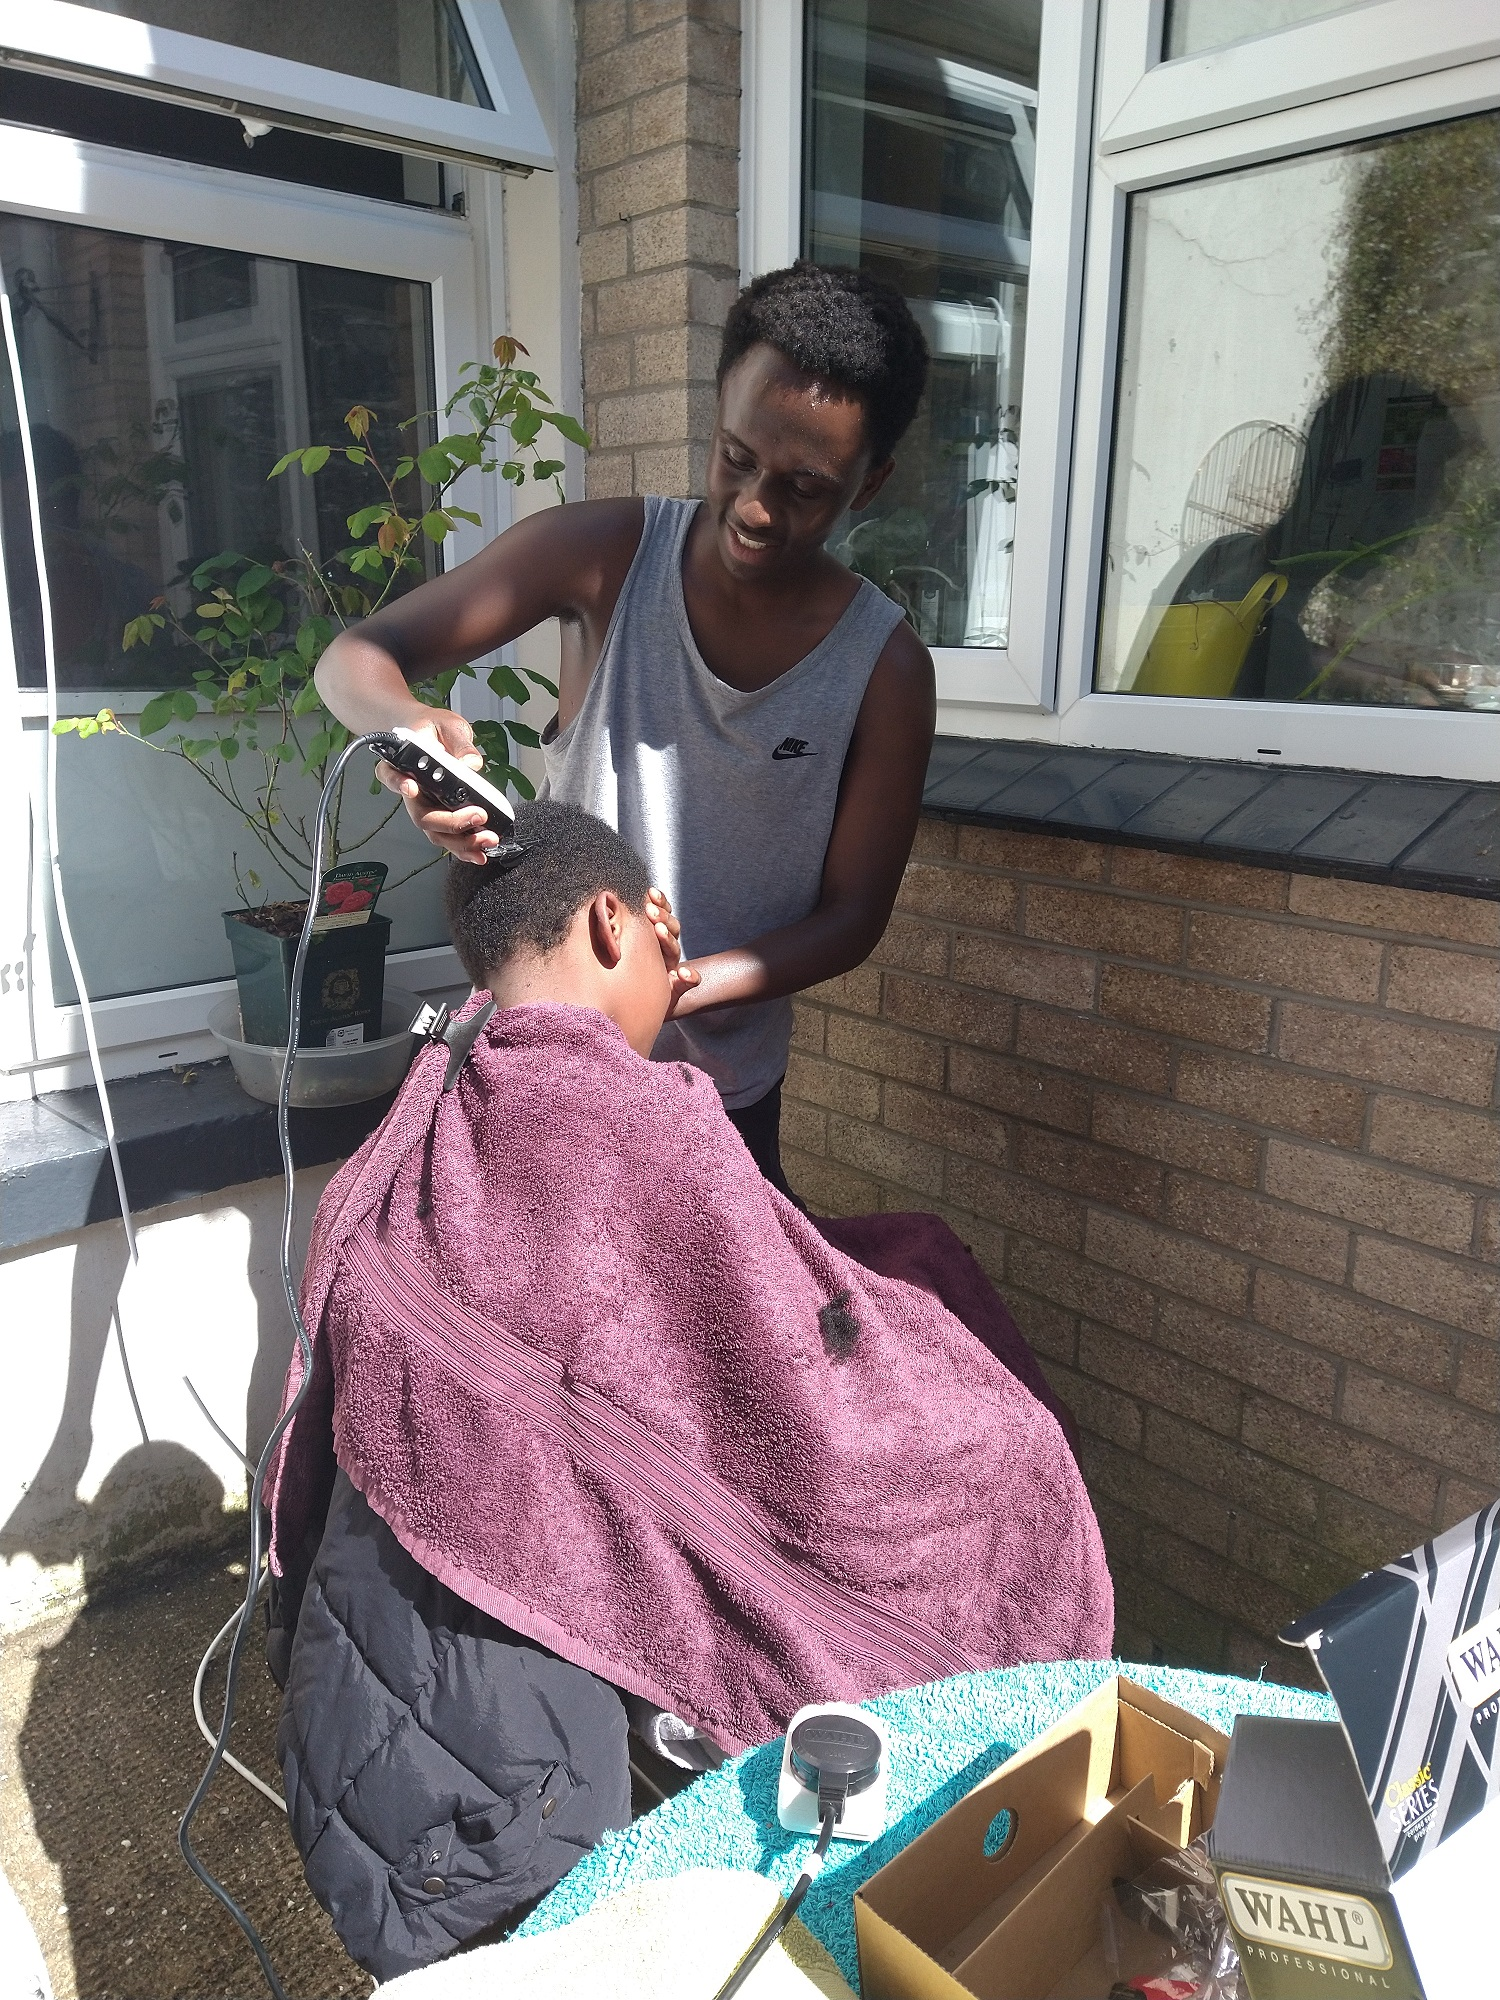 A male cuts the hair of a younger male outside